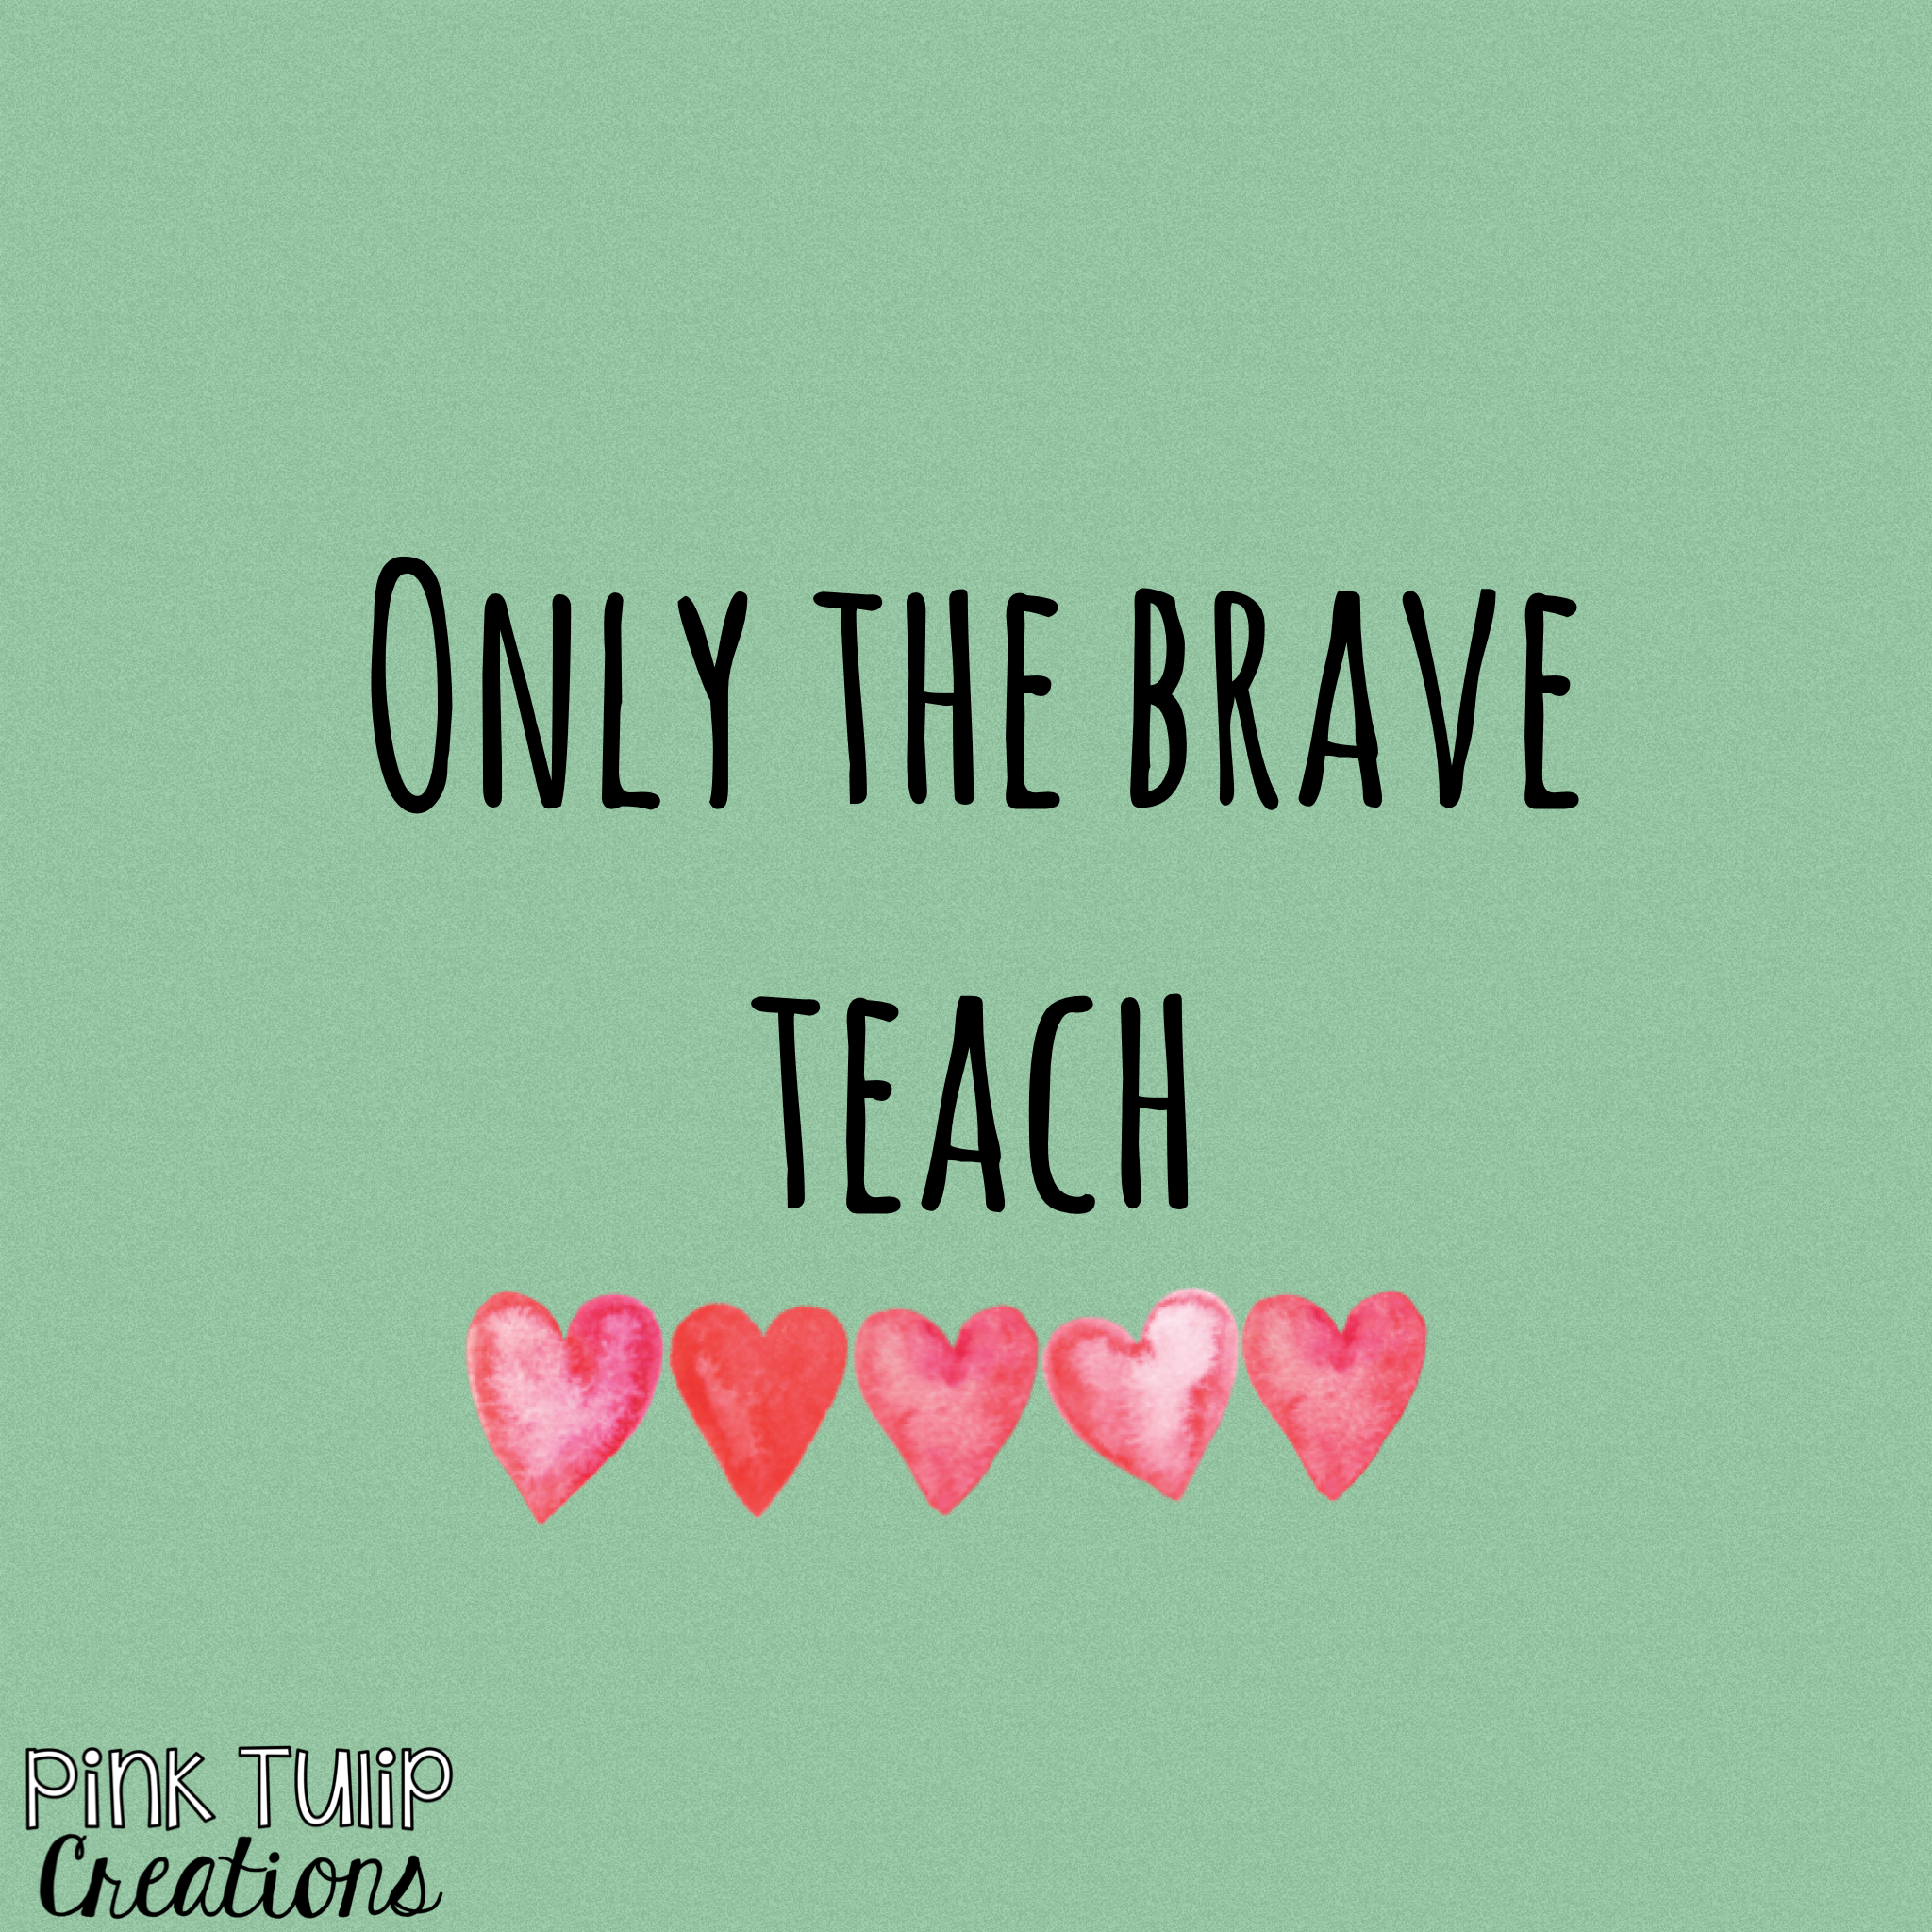 Teaching Quotes Awesome Only The Brave Teachteaching Quotes Educational Education . 2017